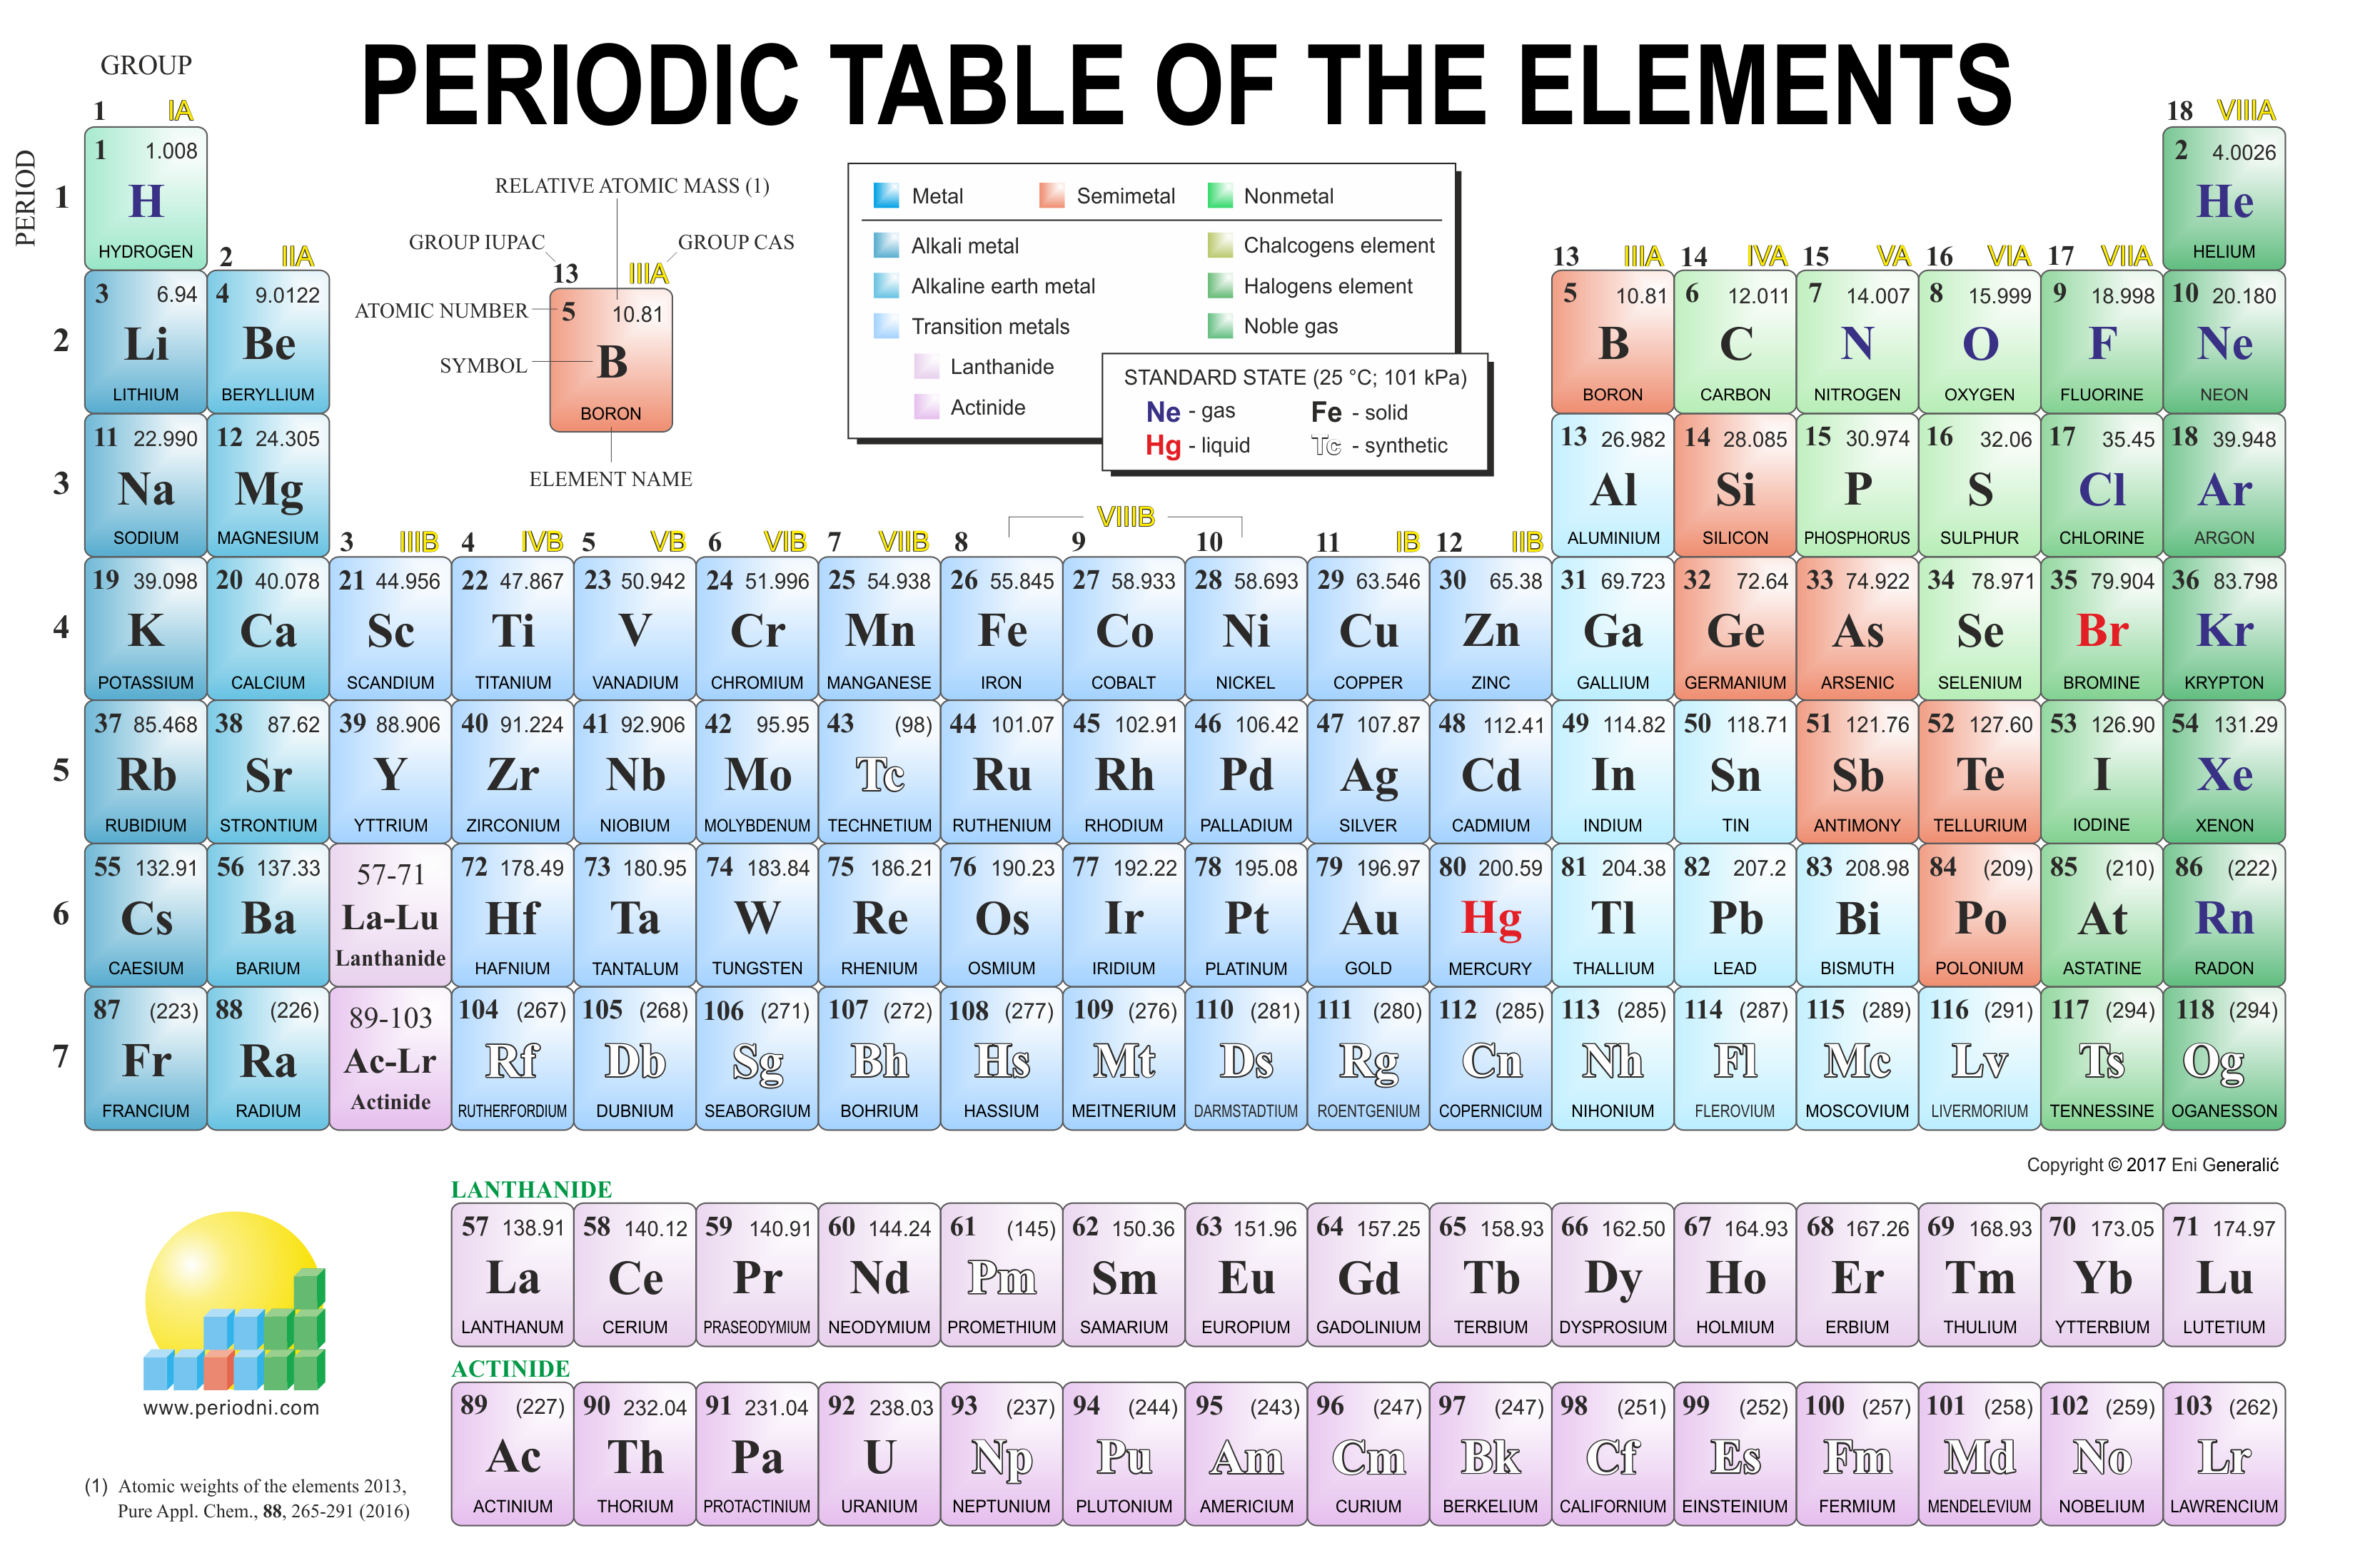 Direct download link: https://www.periodni.com/gallery/modern_periodic_table.png